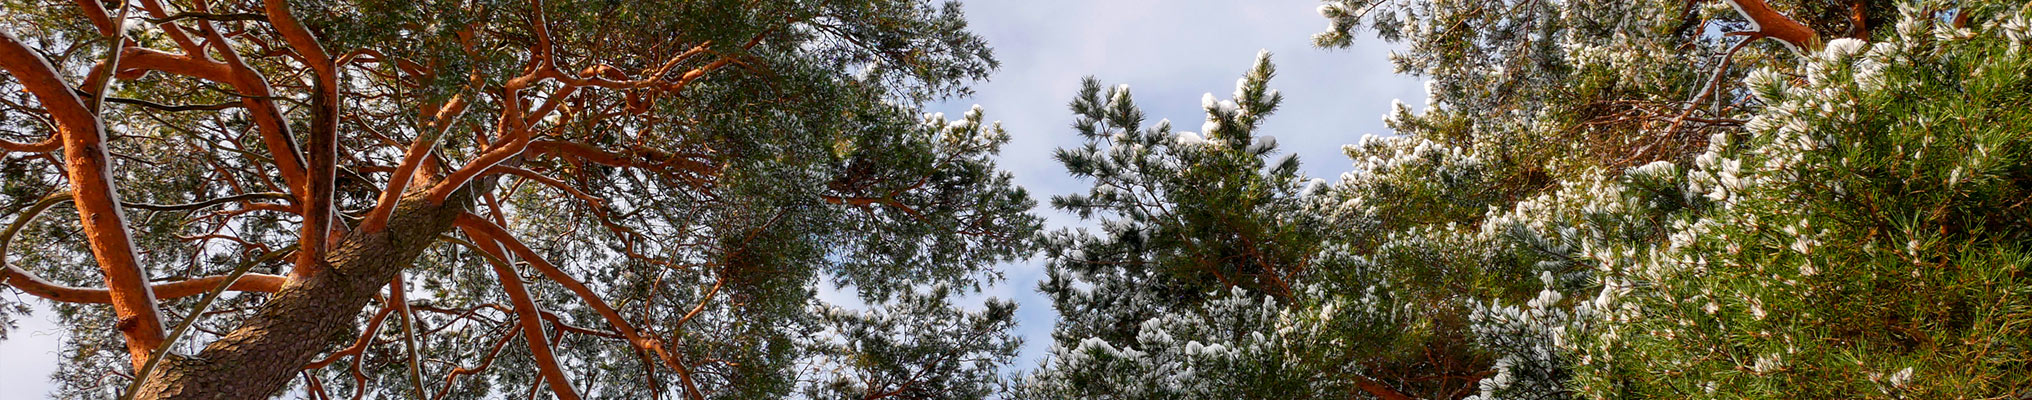 Pine branches and leaves